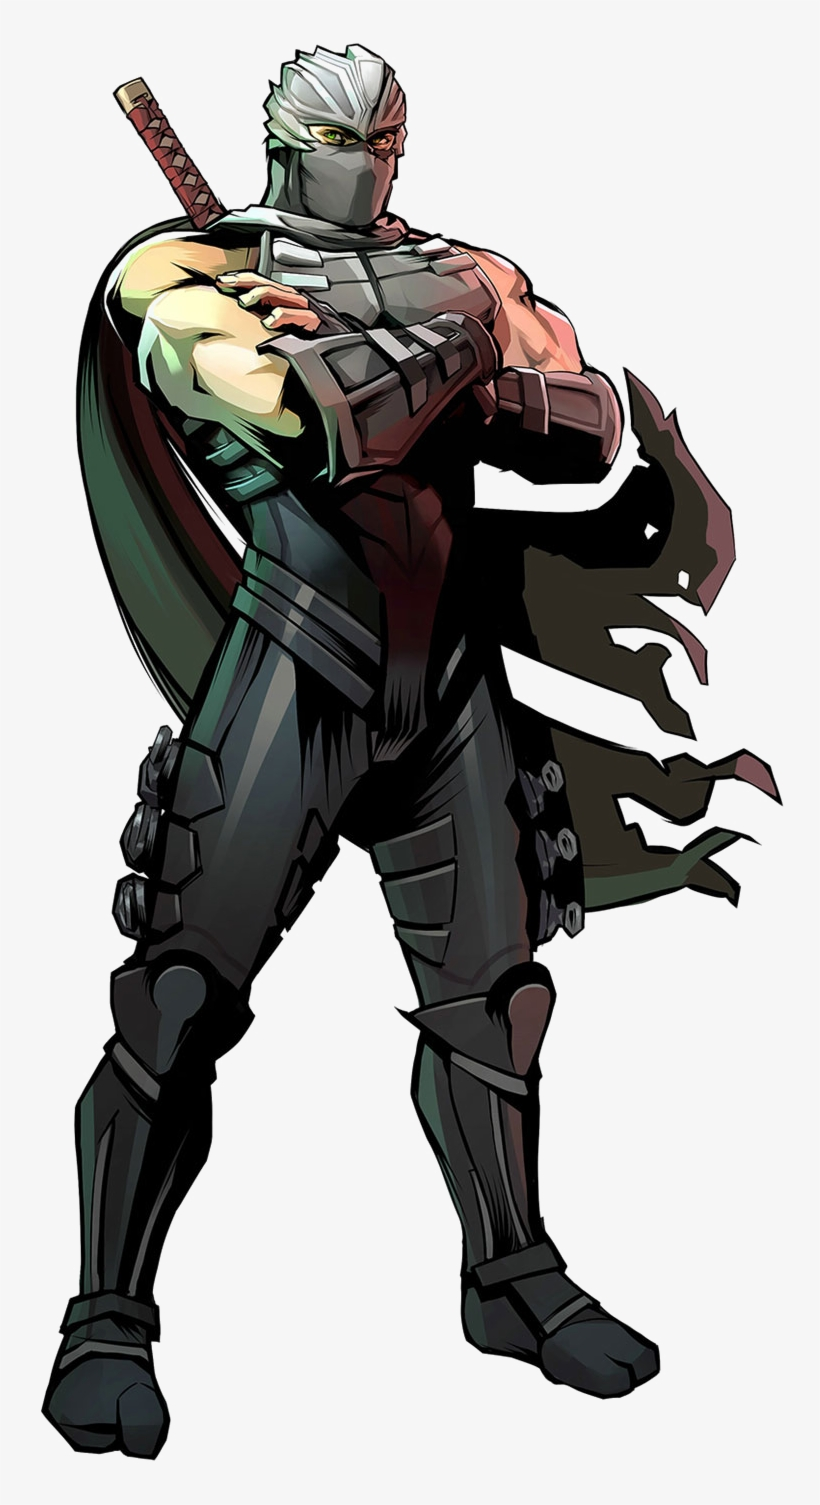 Ryu Hayabusa Png Image With Transparent Background - Ryu Hayabusa Ninja Gaiden, transparent png #3113846